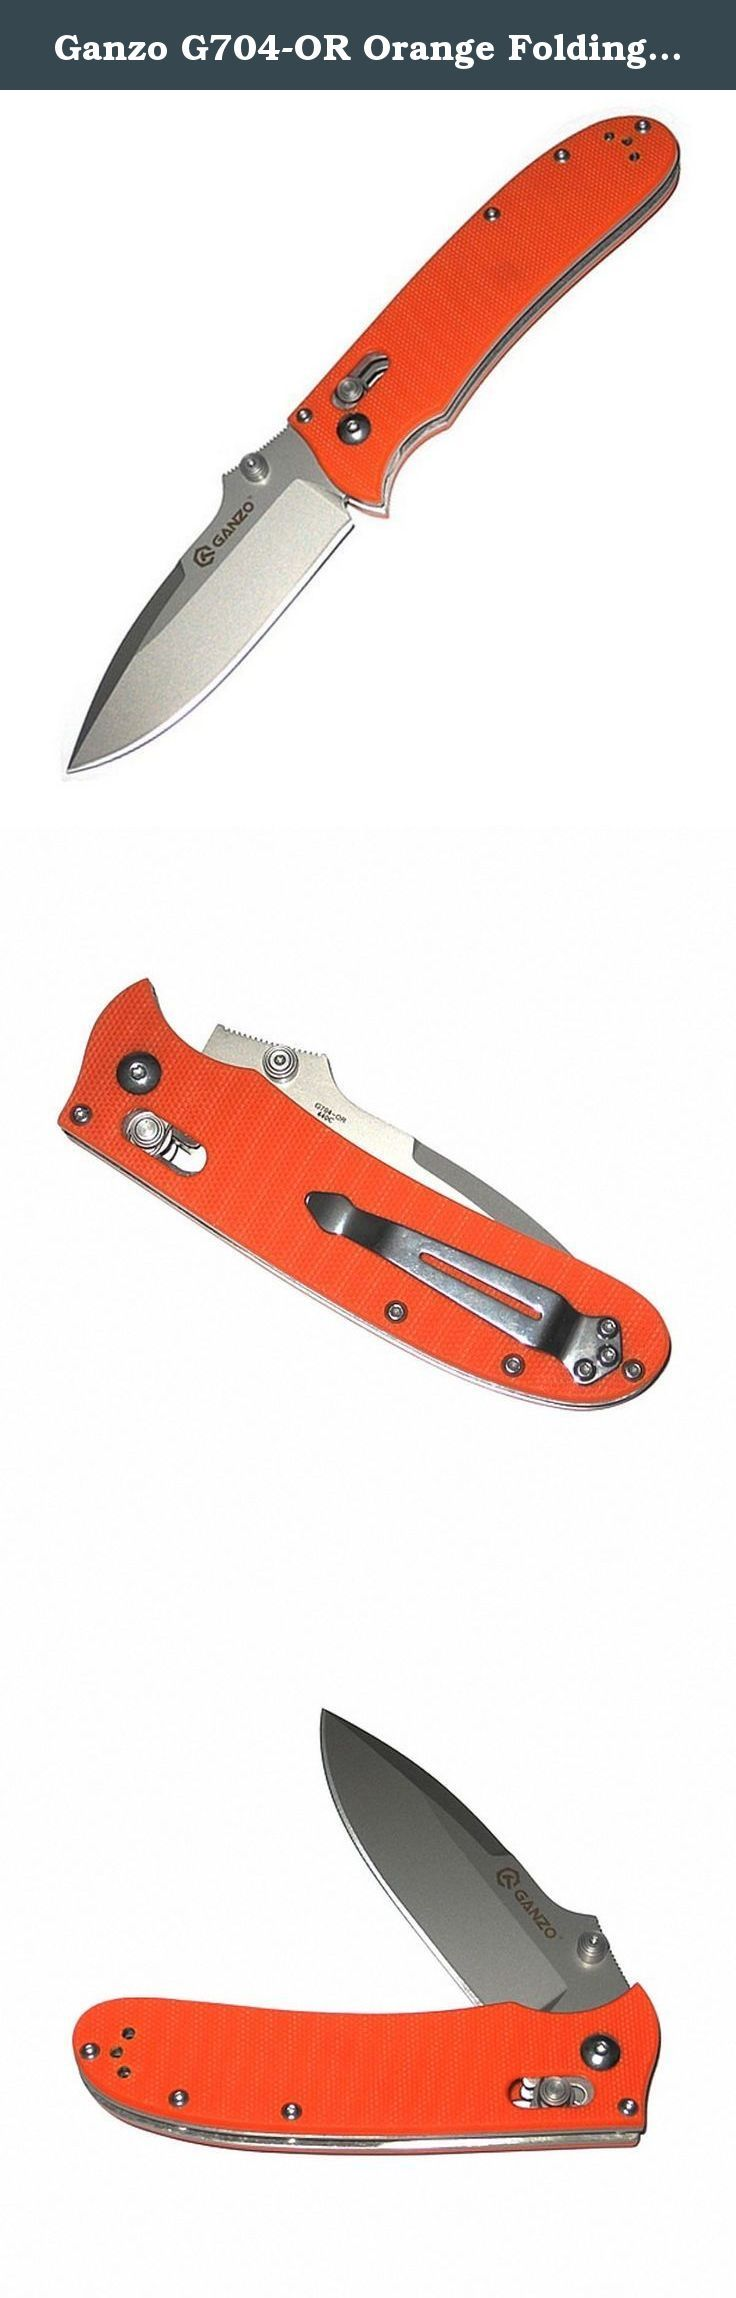 Ganzo G704-OR Orange Folding Knife Camping Knife Hunting Knife EDC Pocket G10 Handle. Modern classic is the knife with drop-point blade and straight sharpening. Ganzo G704 model will be enjoyed by both tourists and hunters, fishermen. High-quality alloy steel 440C (resistant to corrosion) was selected as the blade material. Its hardness is 58-60 units on Rockwell scale allowing to speak with confidence on the knife durability, its resistance to high loads and extreme conditions of use. It…